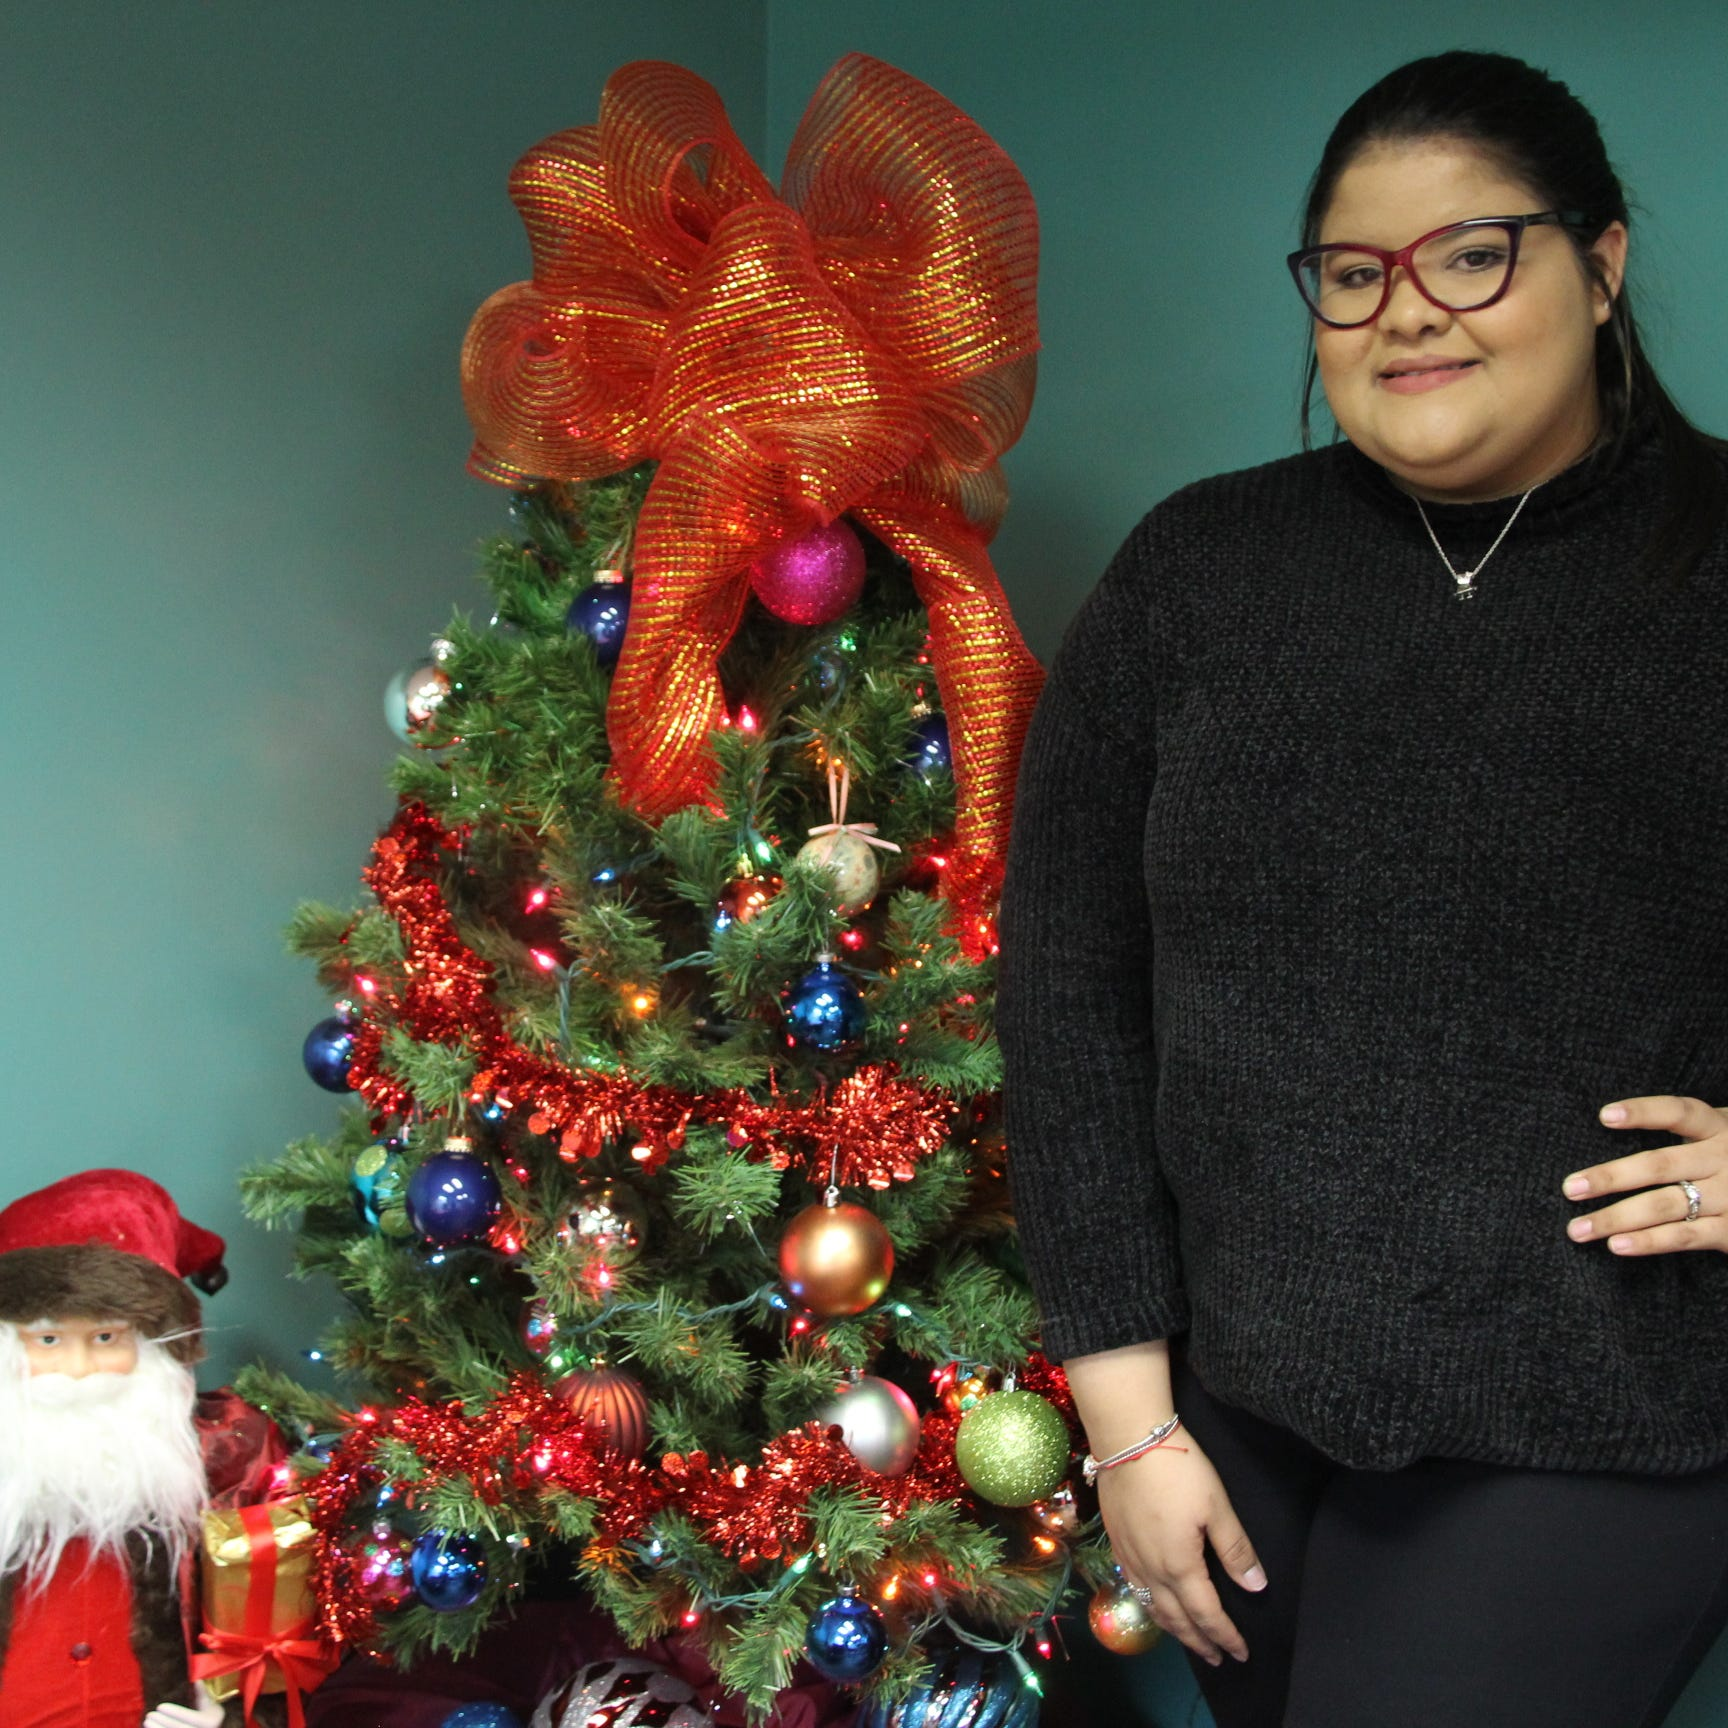 'Rochester is home now' ... how 3 Hurricane Maria survivors found peace for Christmas